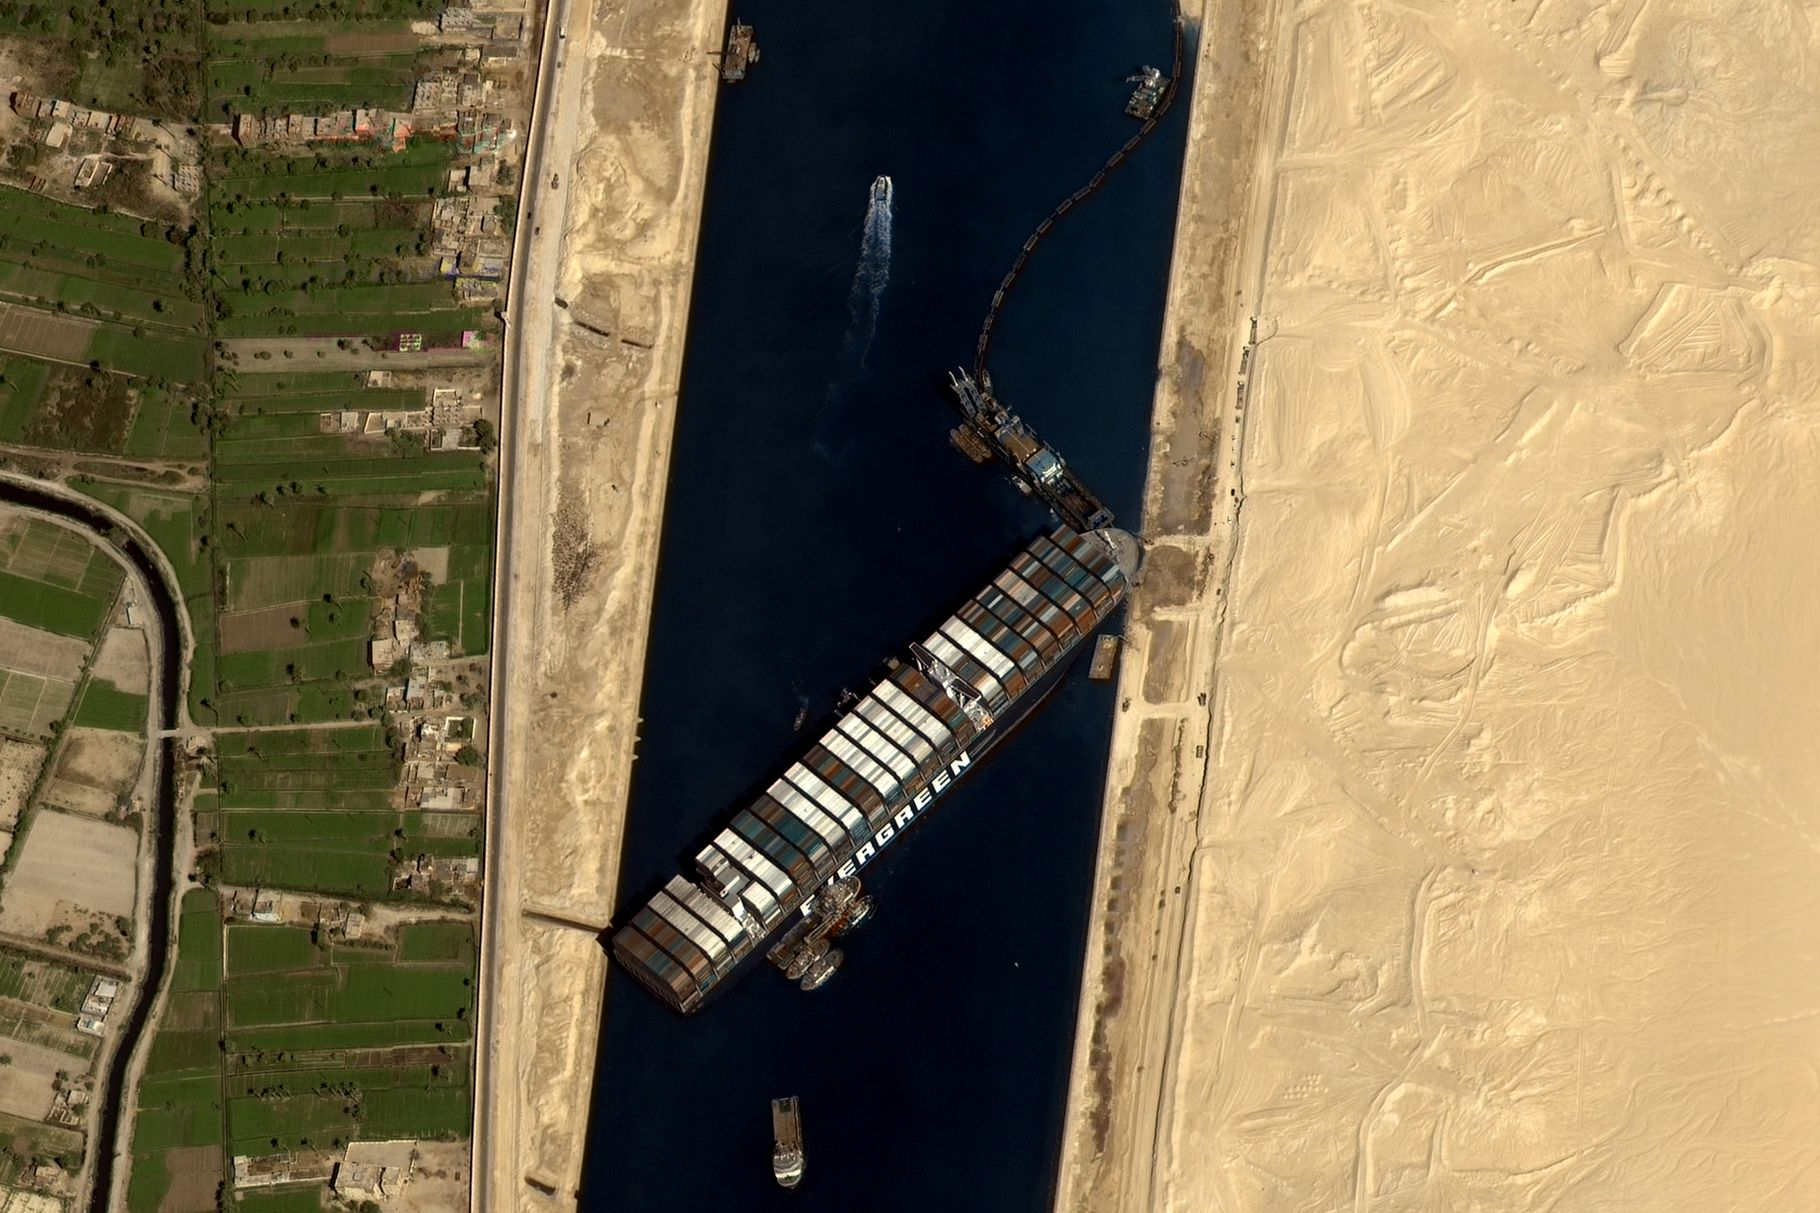 Microsoft Flight Simulator: How to Install Latest mod featuring the cargo ship stuck in the Suez Canal